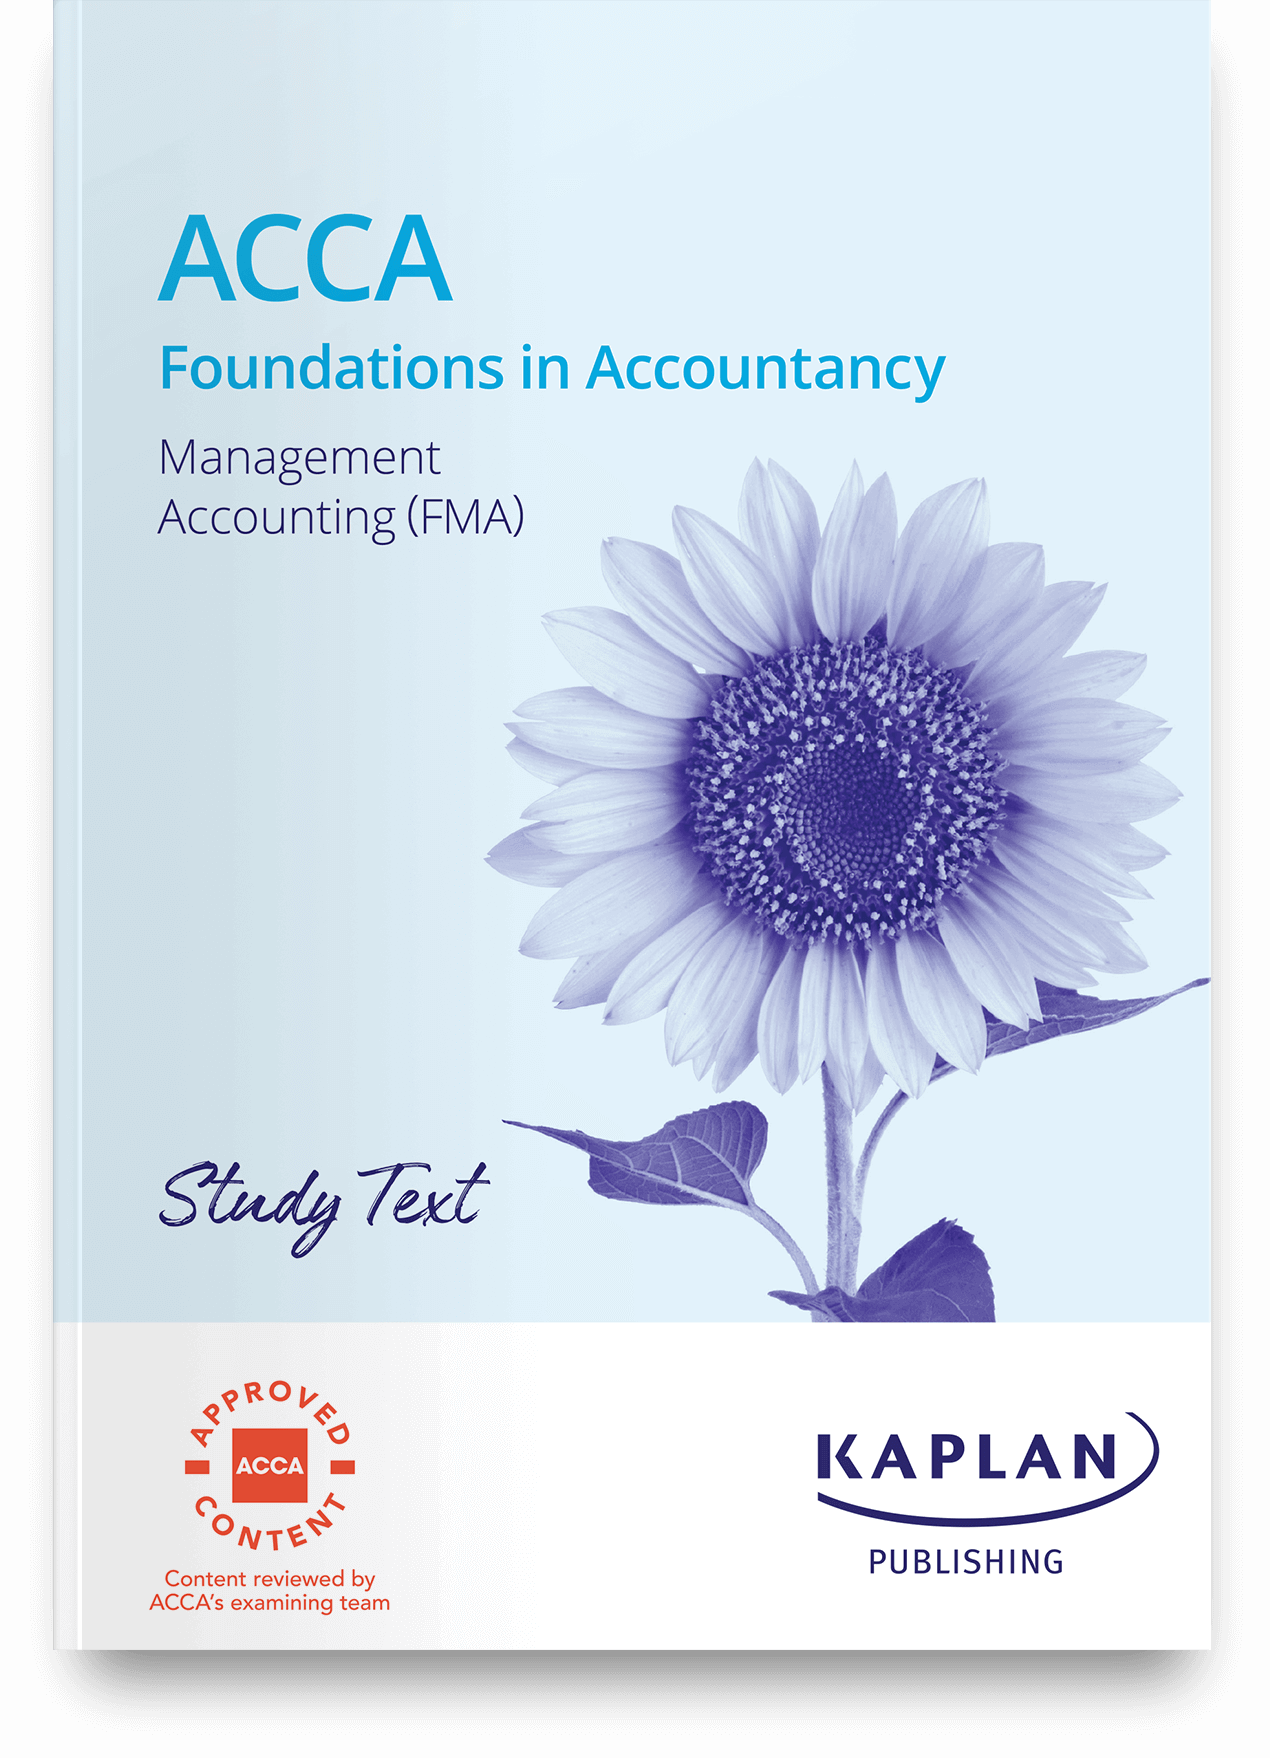 FIA - Management Accounting (FMA) - Study Text